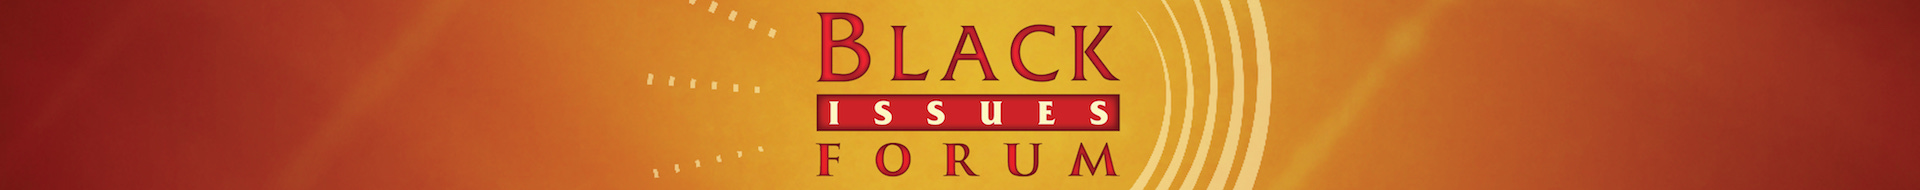 Black Issues Forum Logo Banner